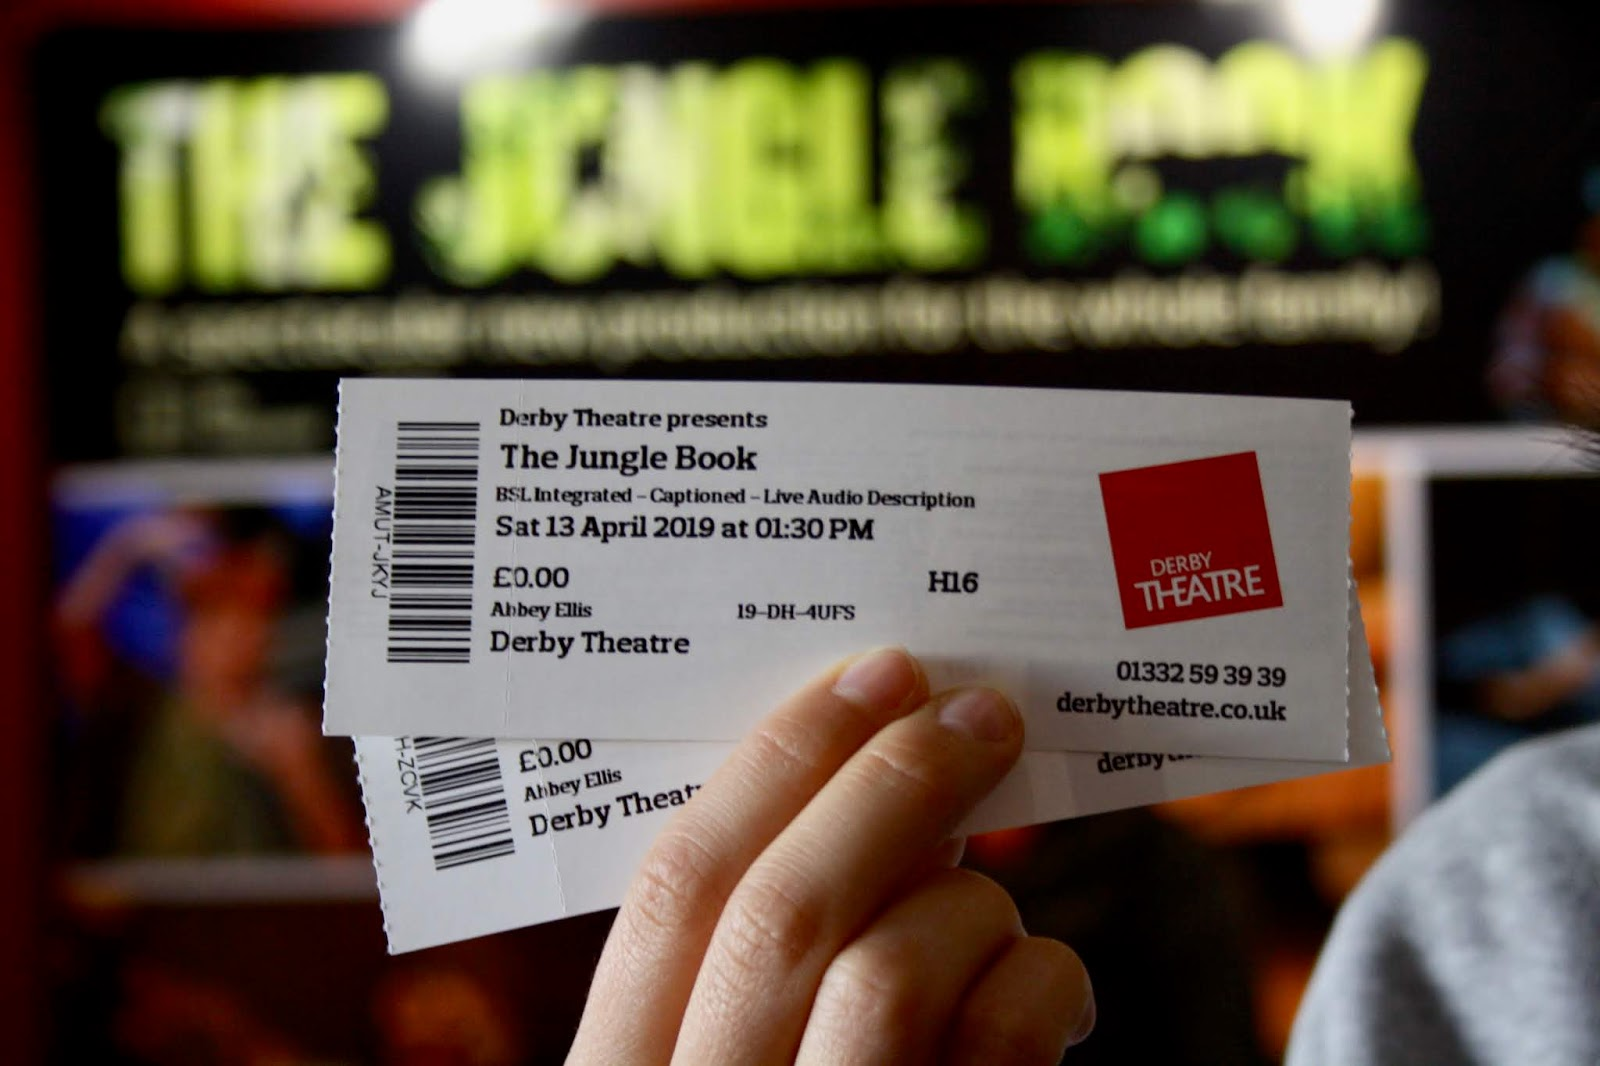 Two tickets to The Jungle Book at Derby Theatre, held up in front of a poster for the performance